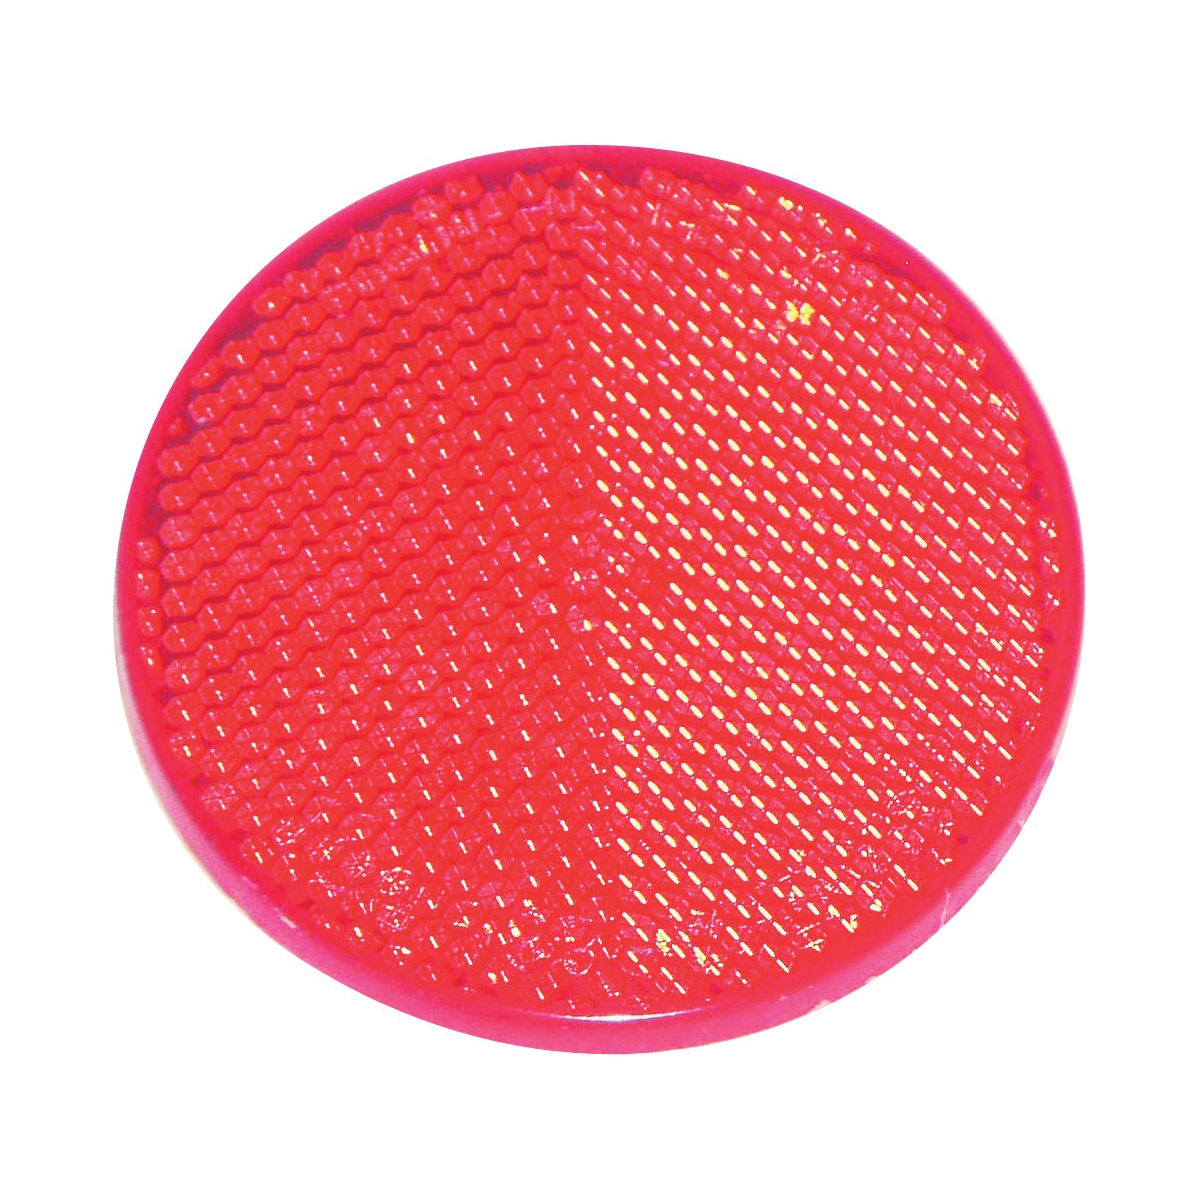 Picture of US Hardware RV-657C Safety Reflector, Red Reflector, Plastic Reflector, Adhesive Mounting